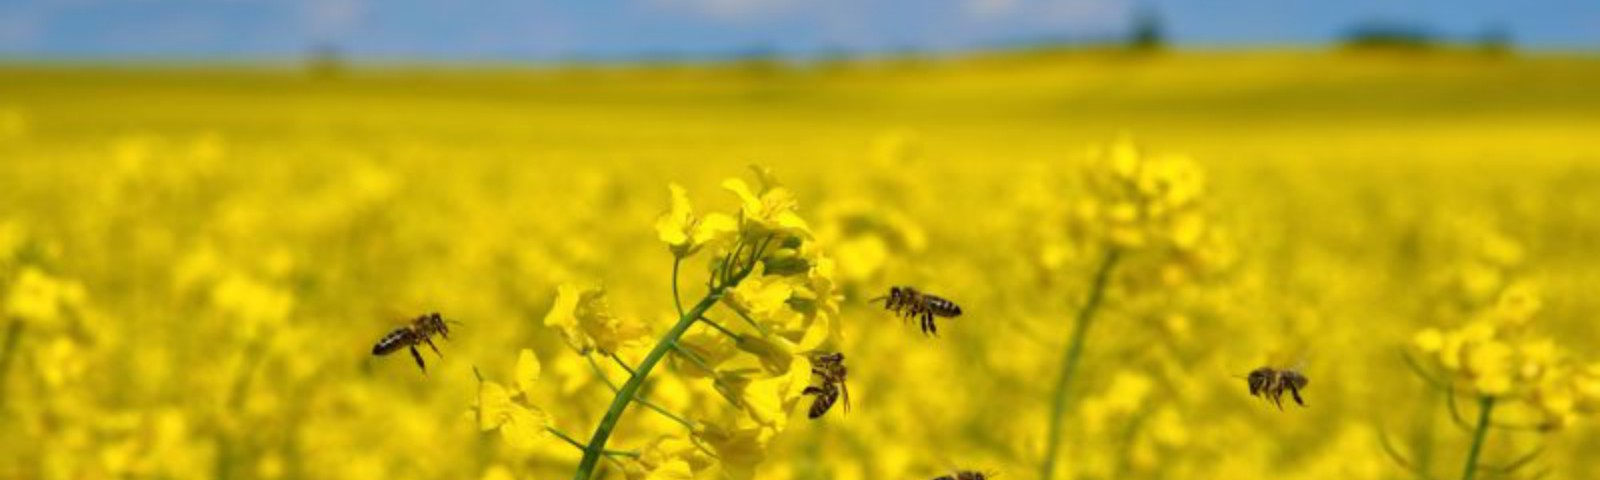 A view of a large, yellow, field of oilseed rape. In the foreground five honey bees fly around a stalk.